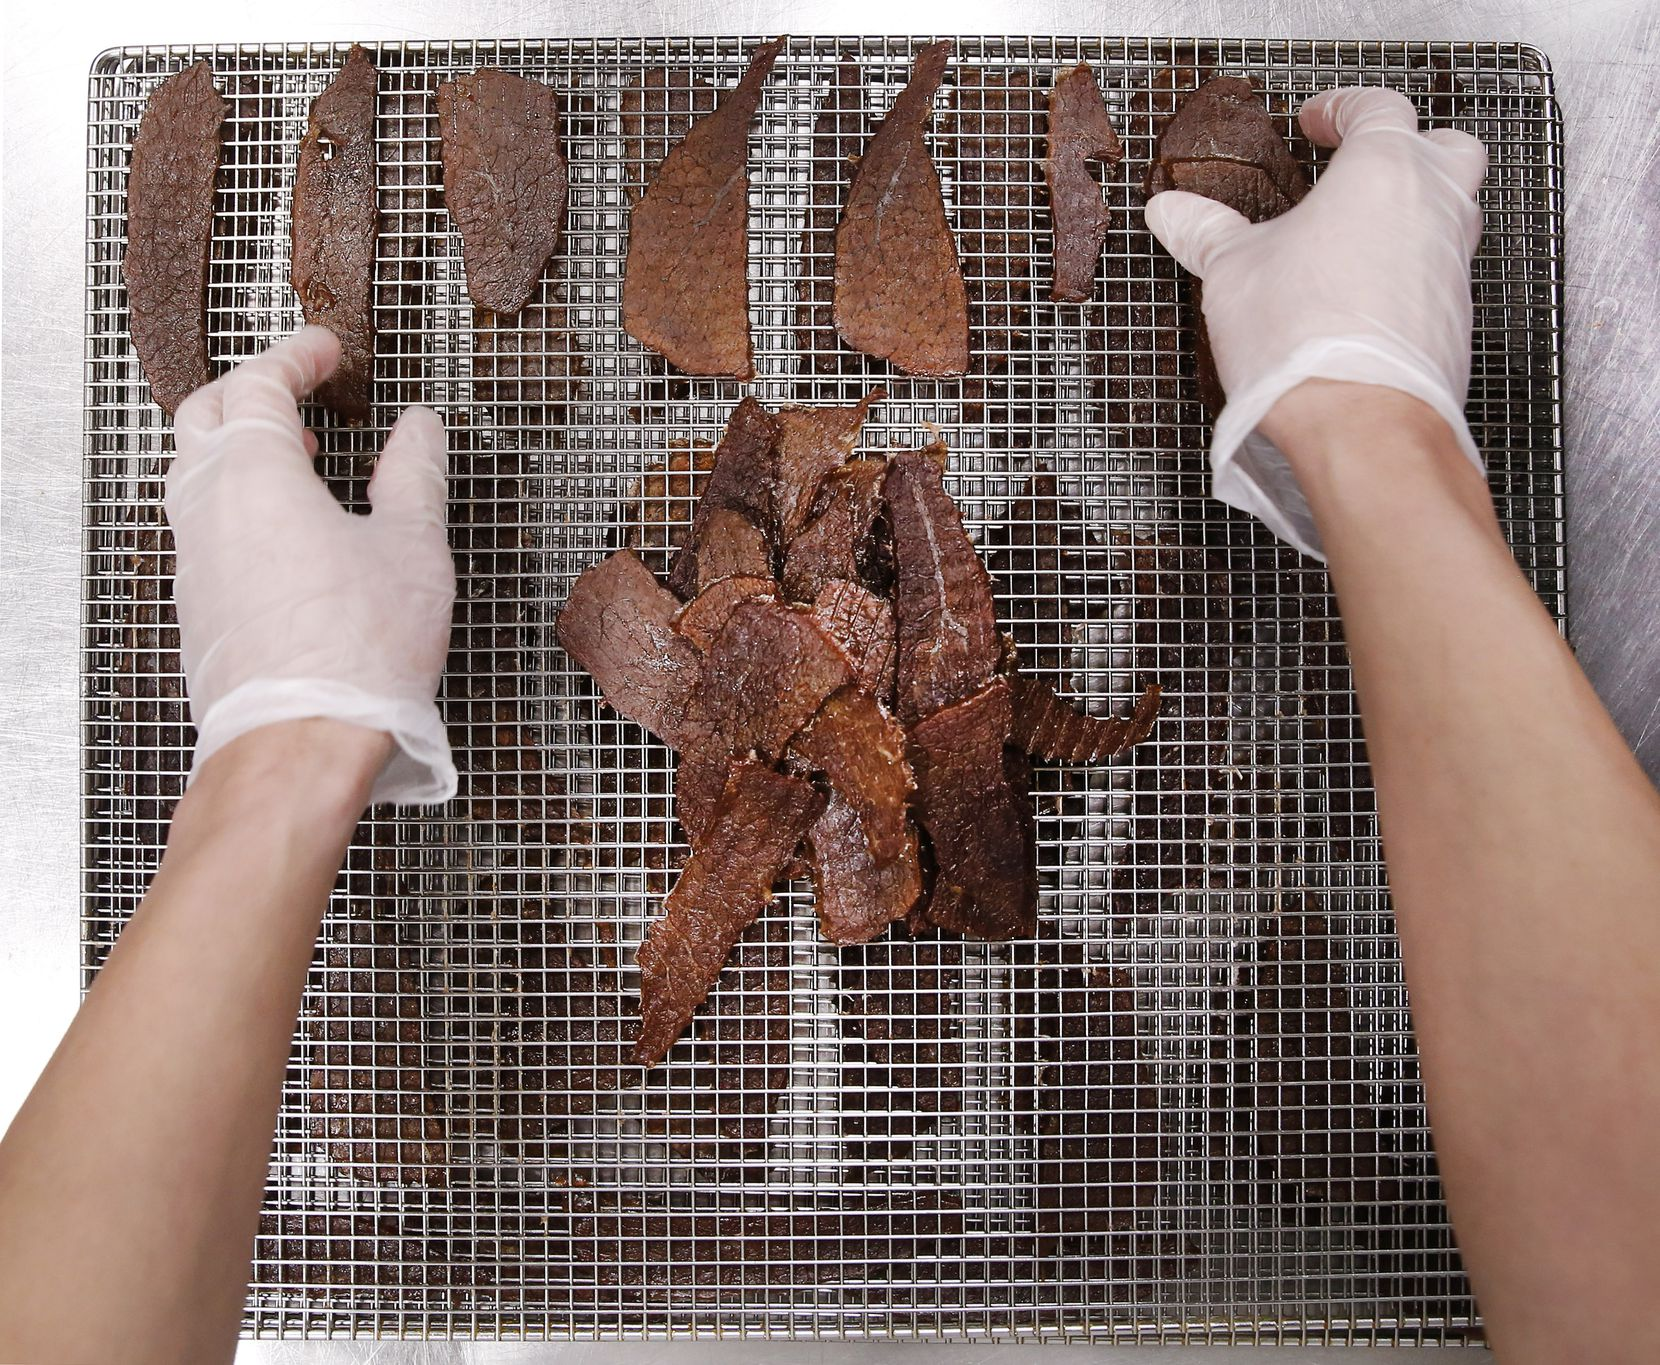 Frick Chanthorn removes warm beef jerky slices from the dehydration unit and piles them up before flash frying them at Saap Lao Kitchen.